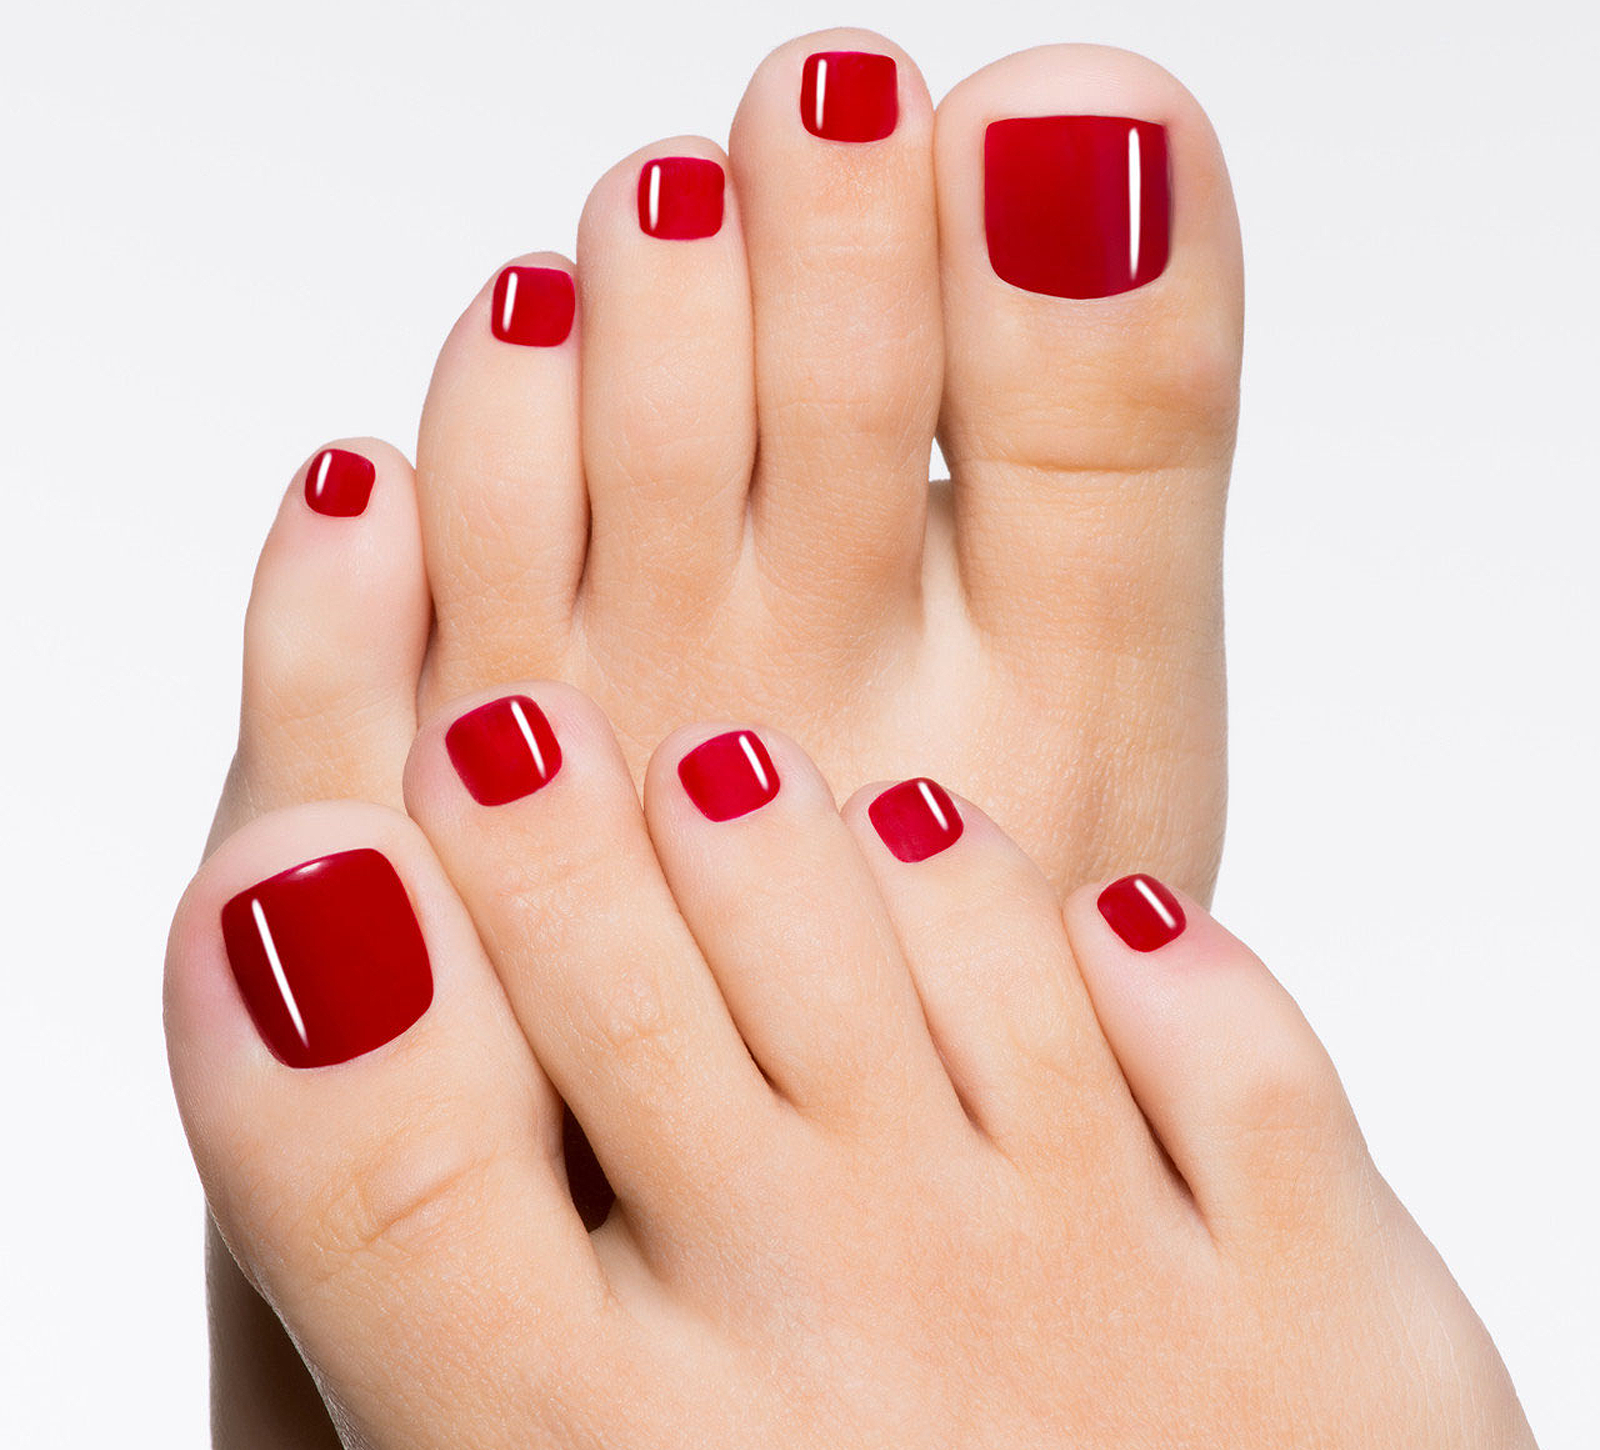 Pedicure - Essential Pedicure - $58Luxury Pedicure - $72+ $12 for CND Shellac Gel Polish